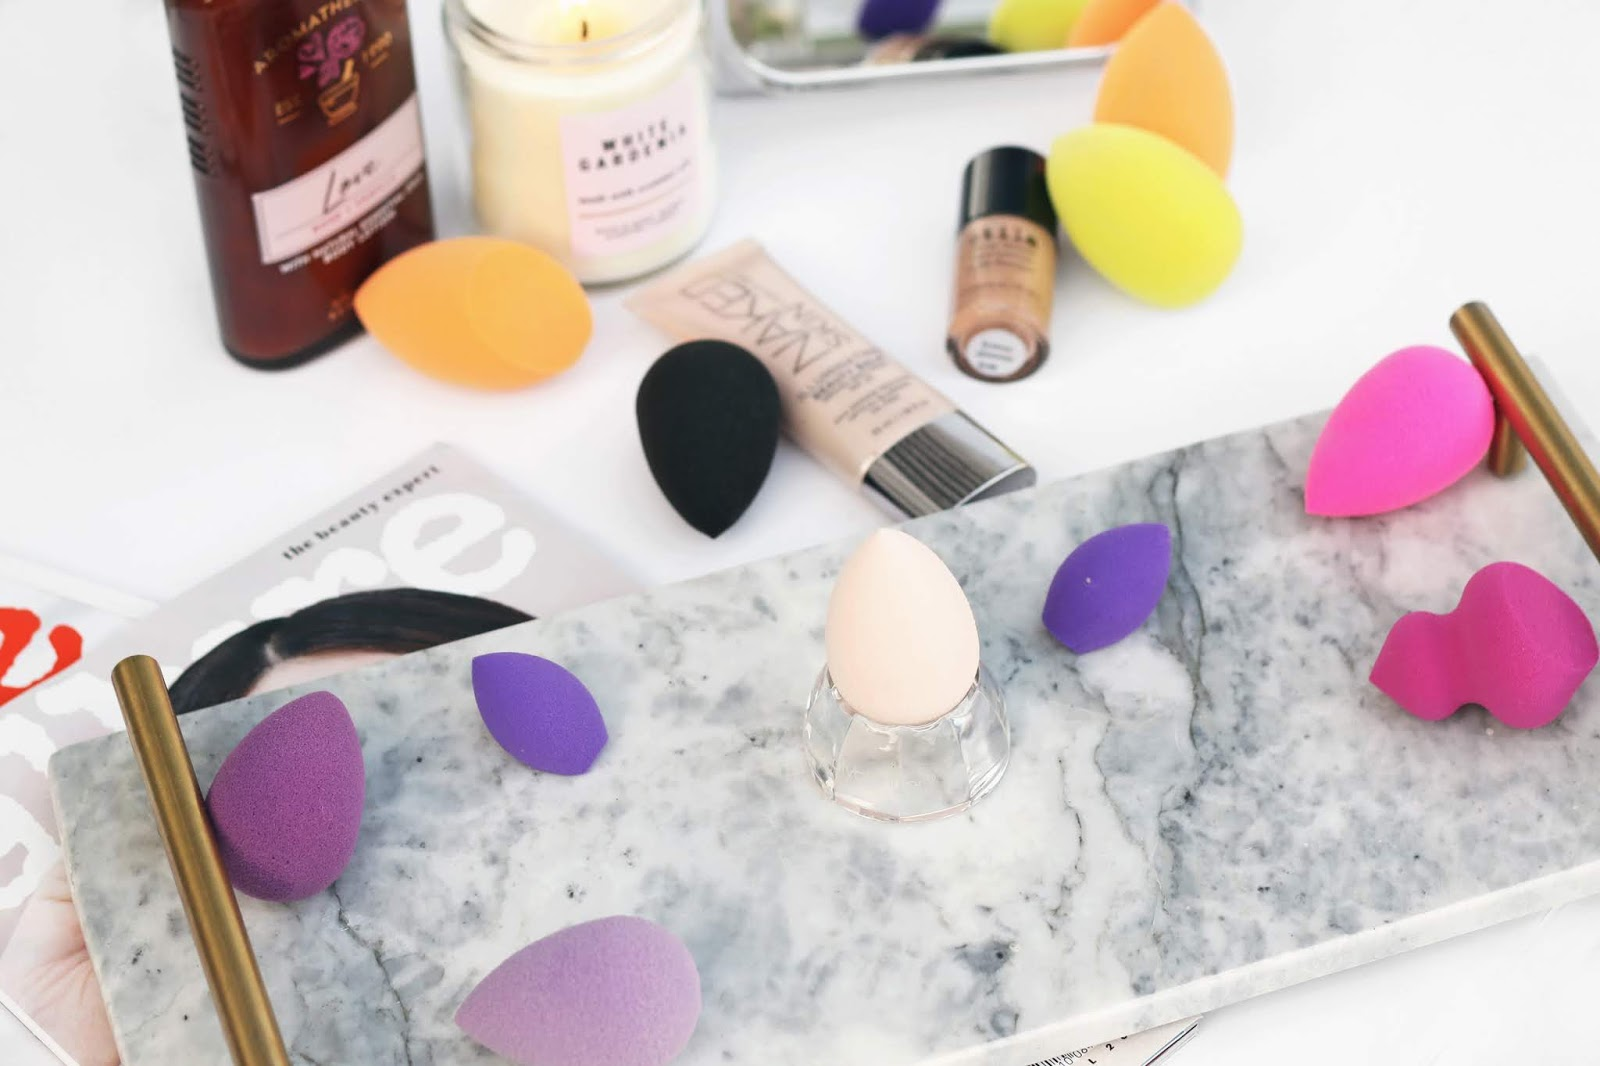 makeup sponges, makeup flatlay, beautyblender with cheaper alternatives, beauty comparisons, beauty blogger